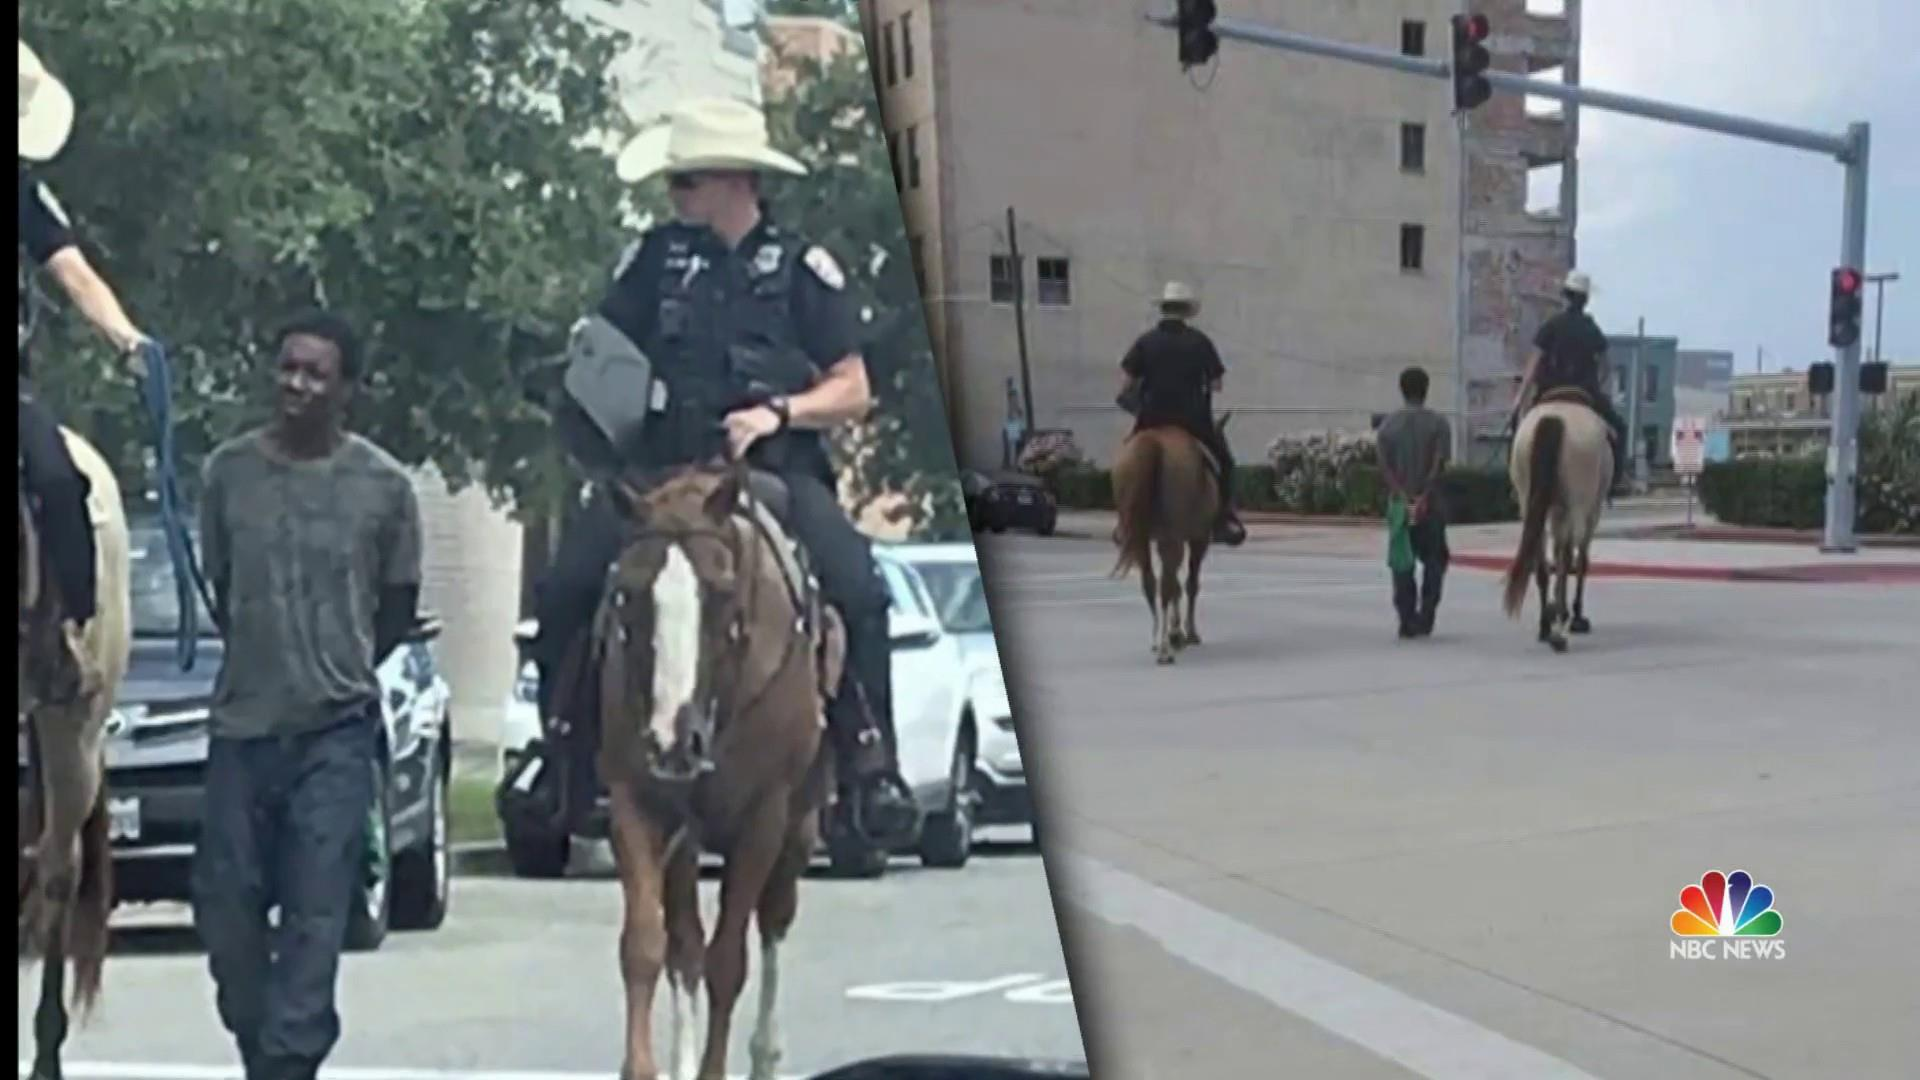 Attorney demands body cam footage of officers on horses leading black man by rope